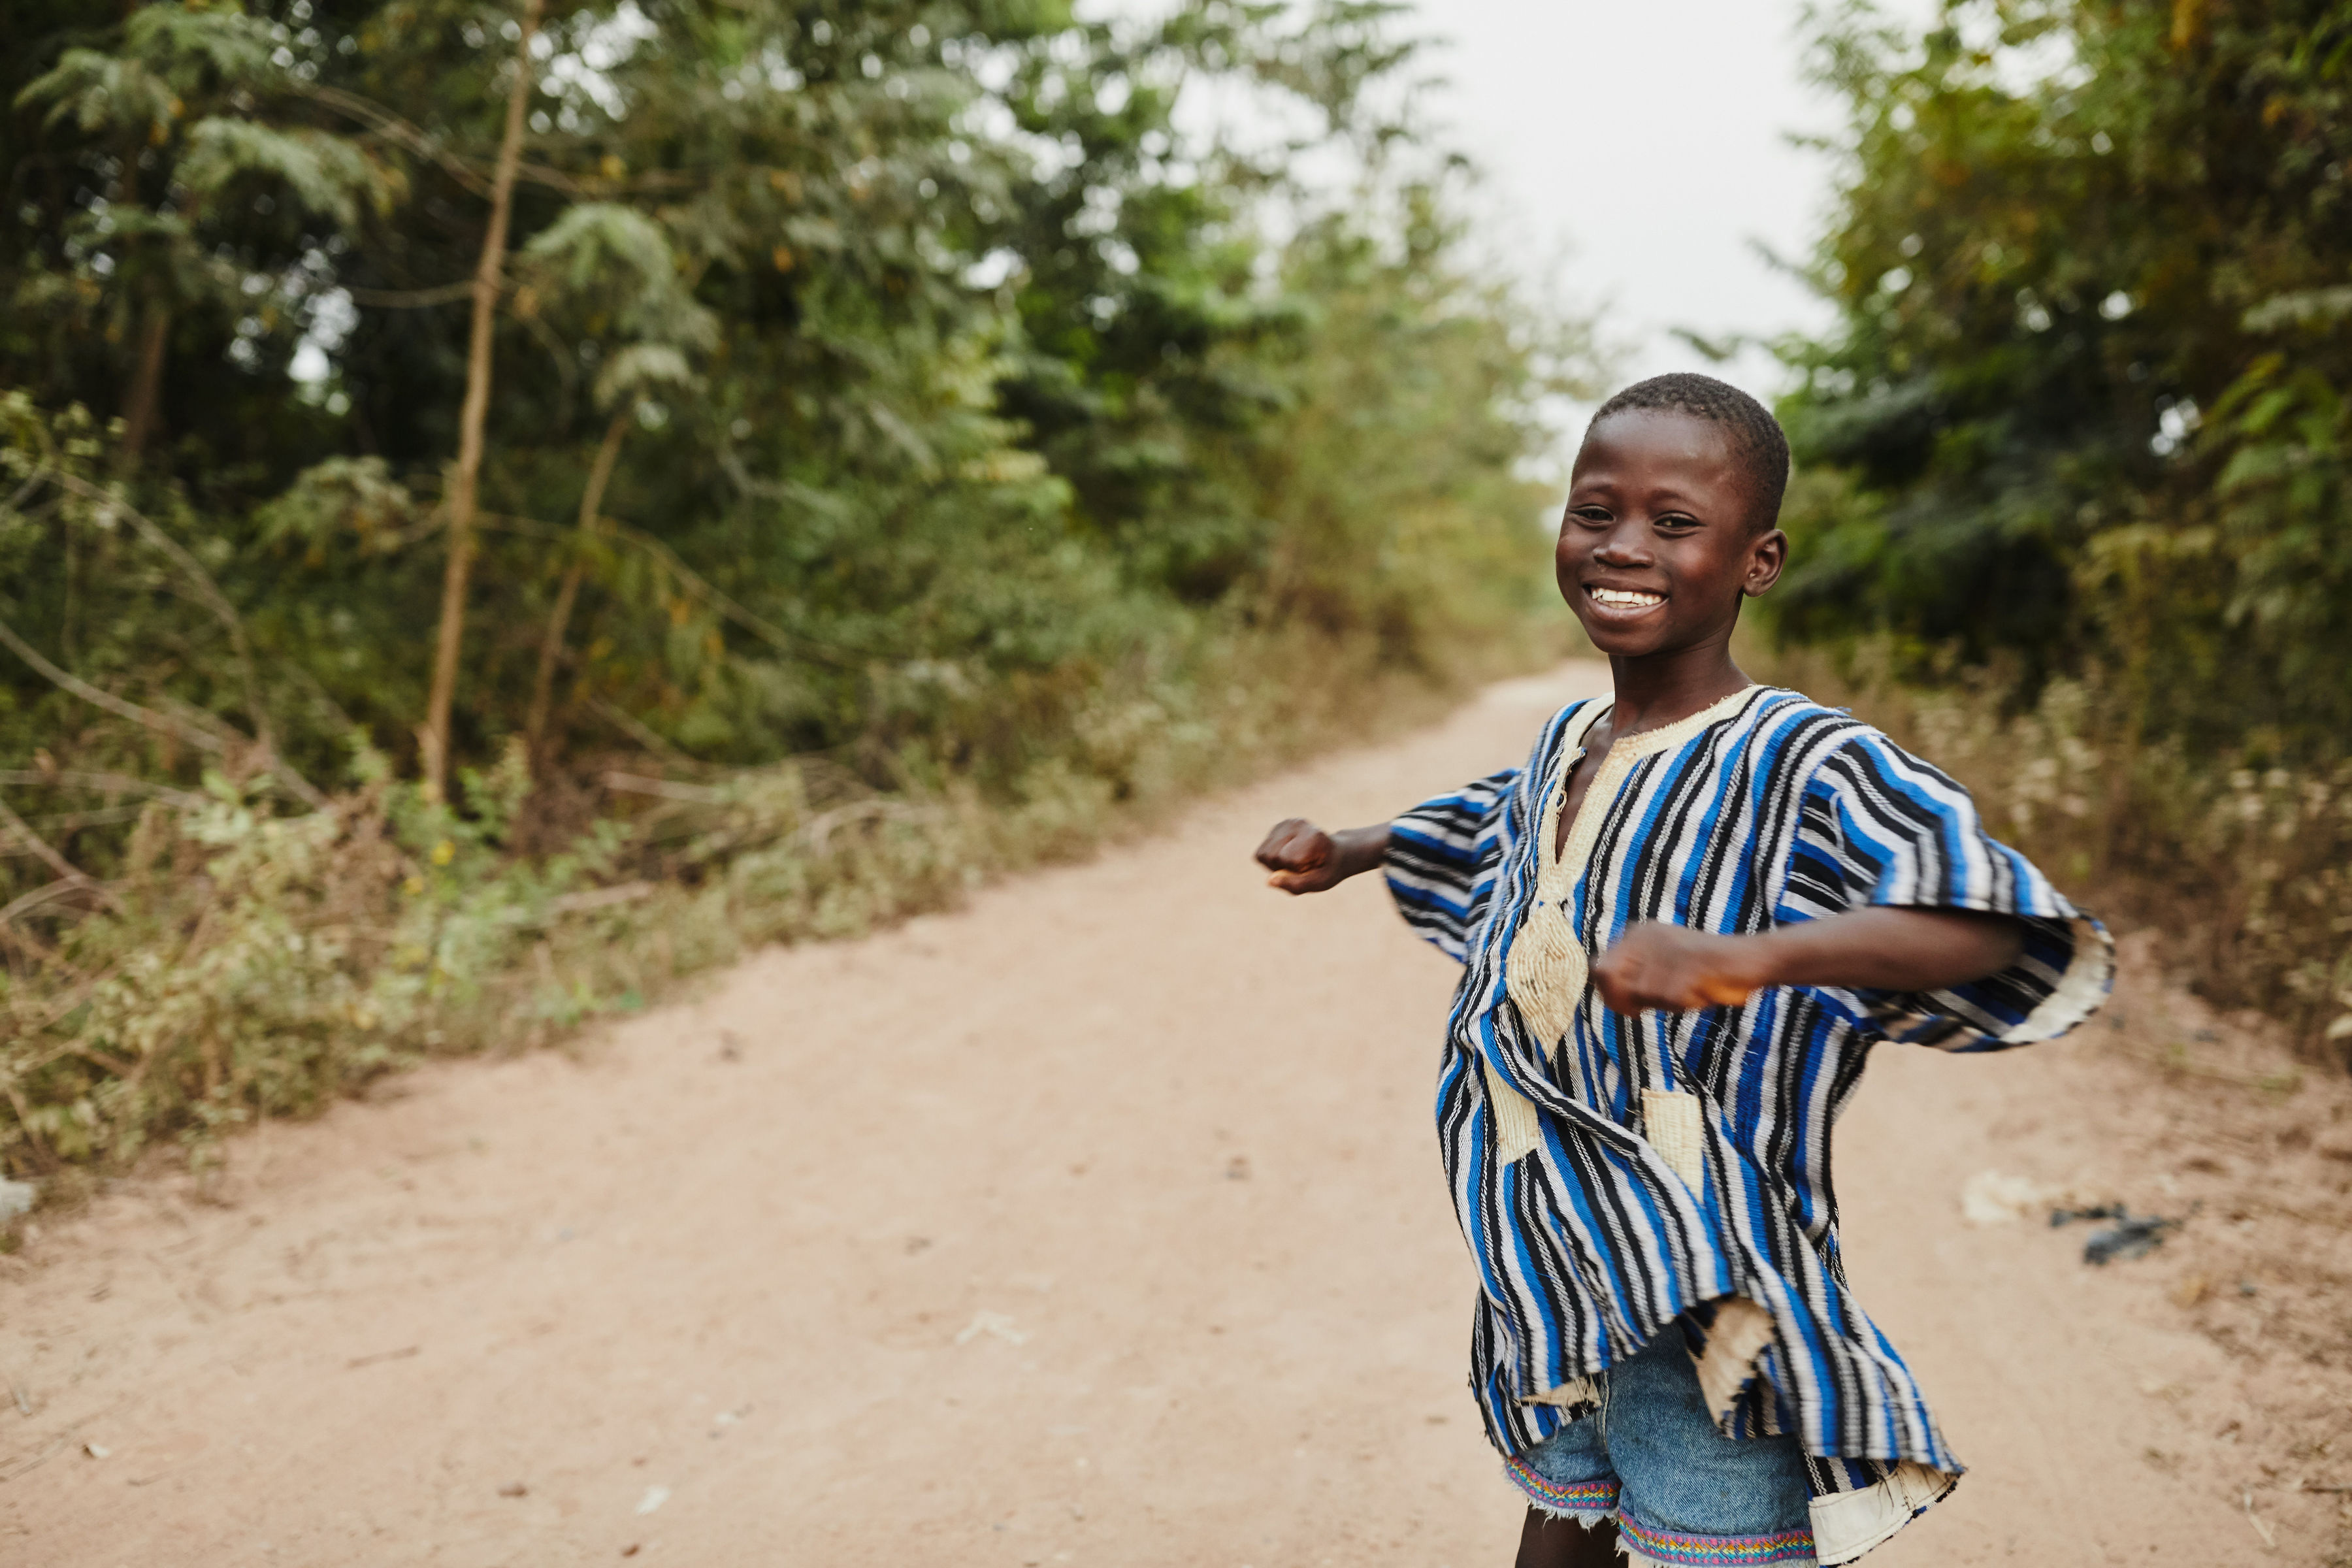 A boy dances on a road in Ghana